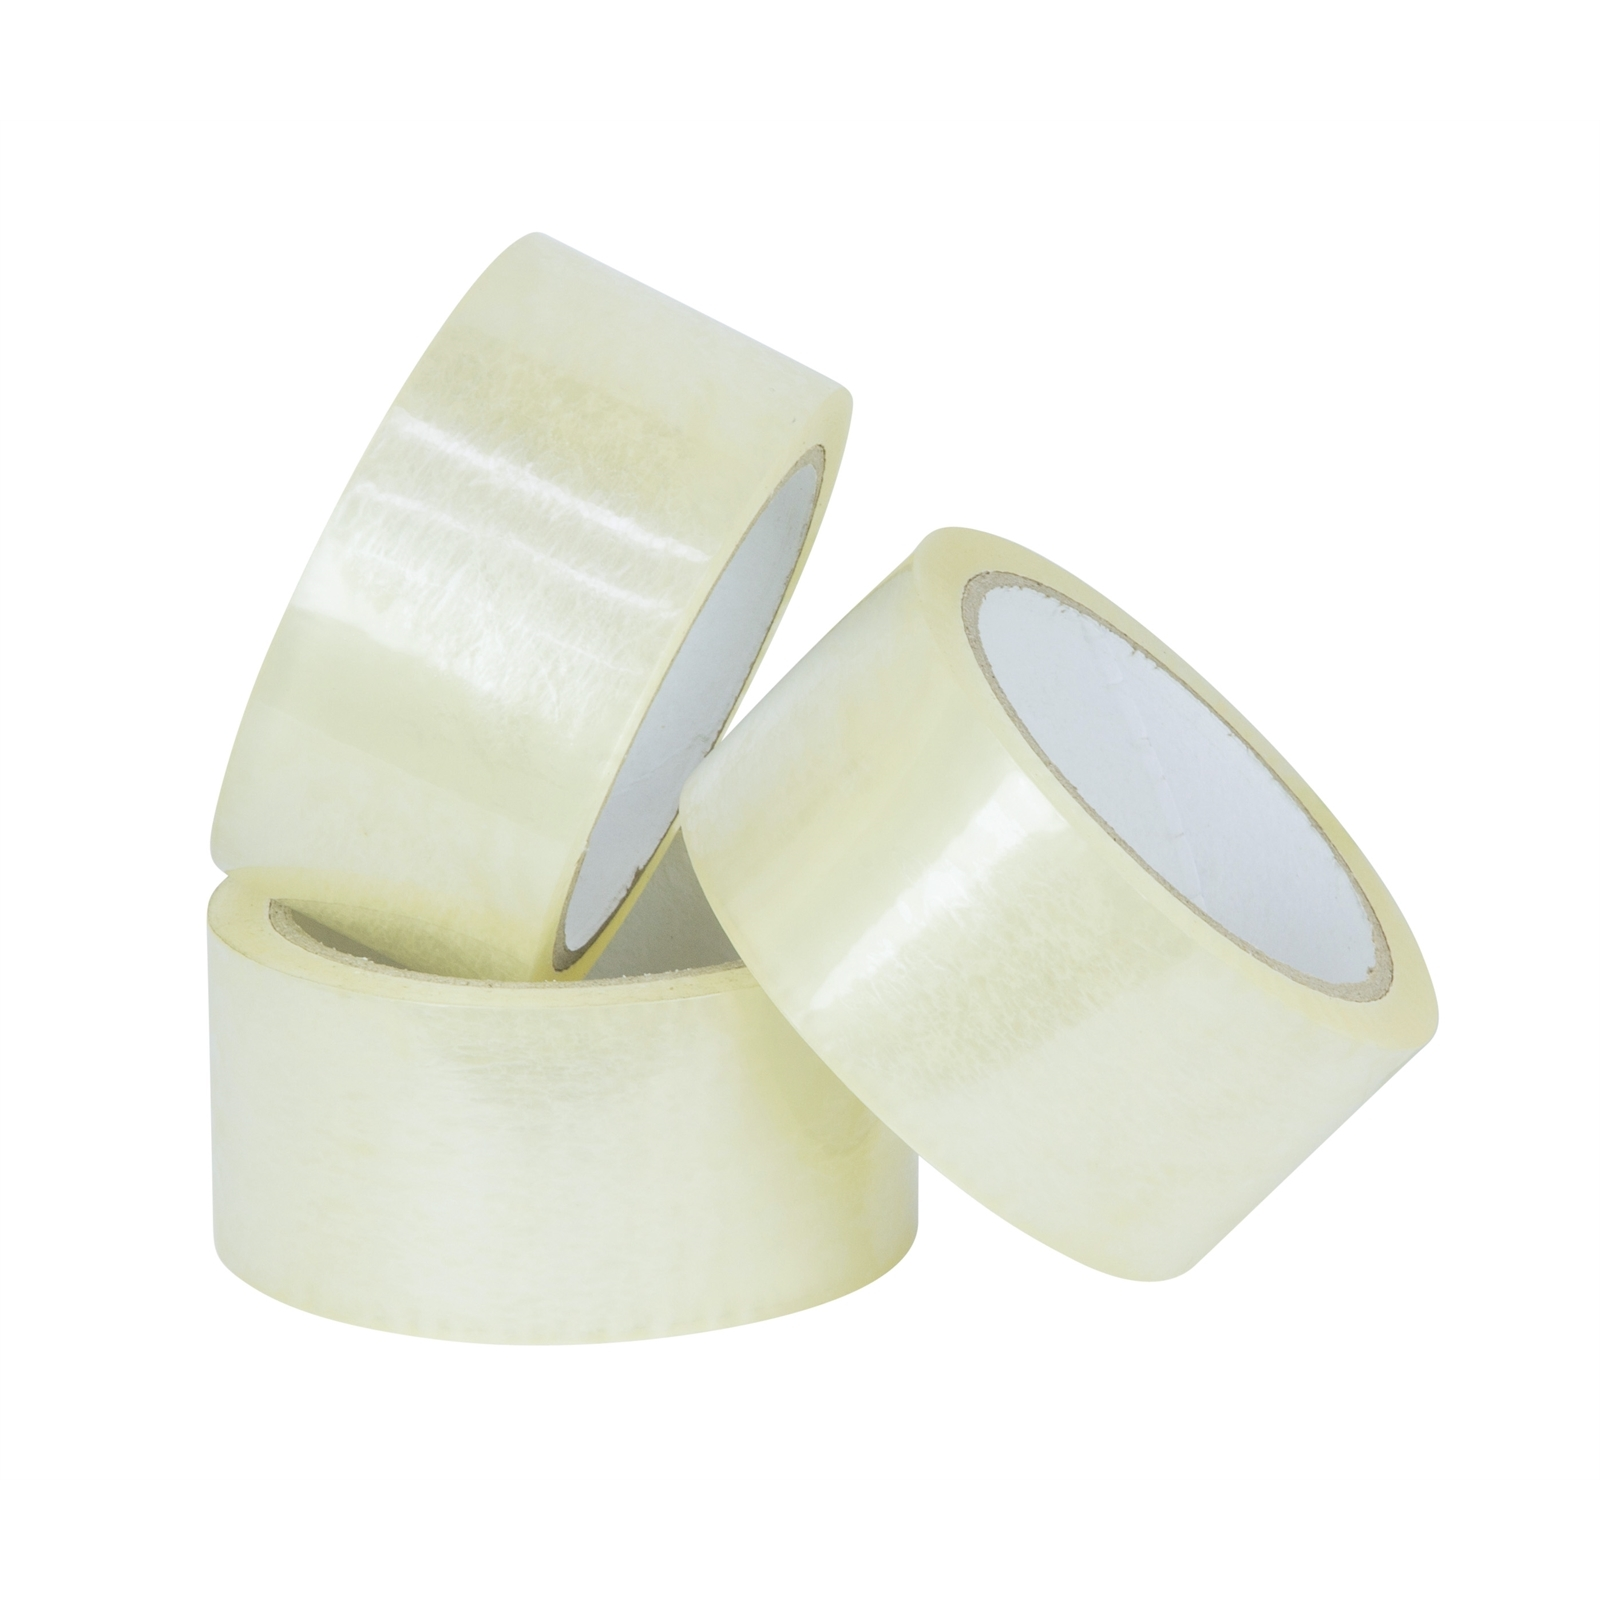 Wrap & Move 48mm x 50m Clear Heavy Duty Packing Tape  - 3 Pack